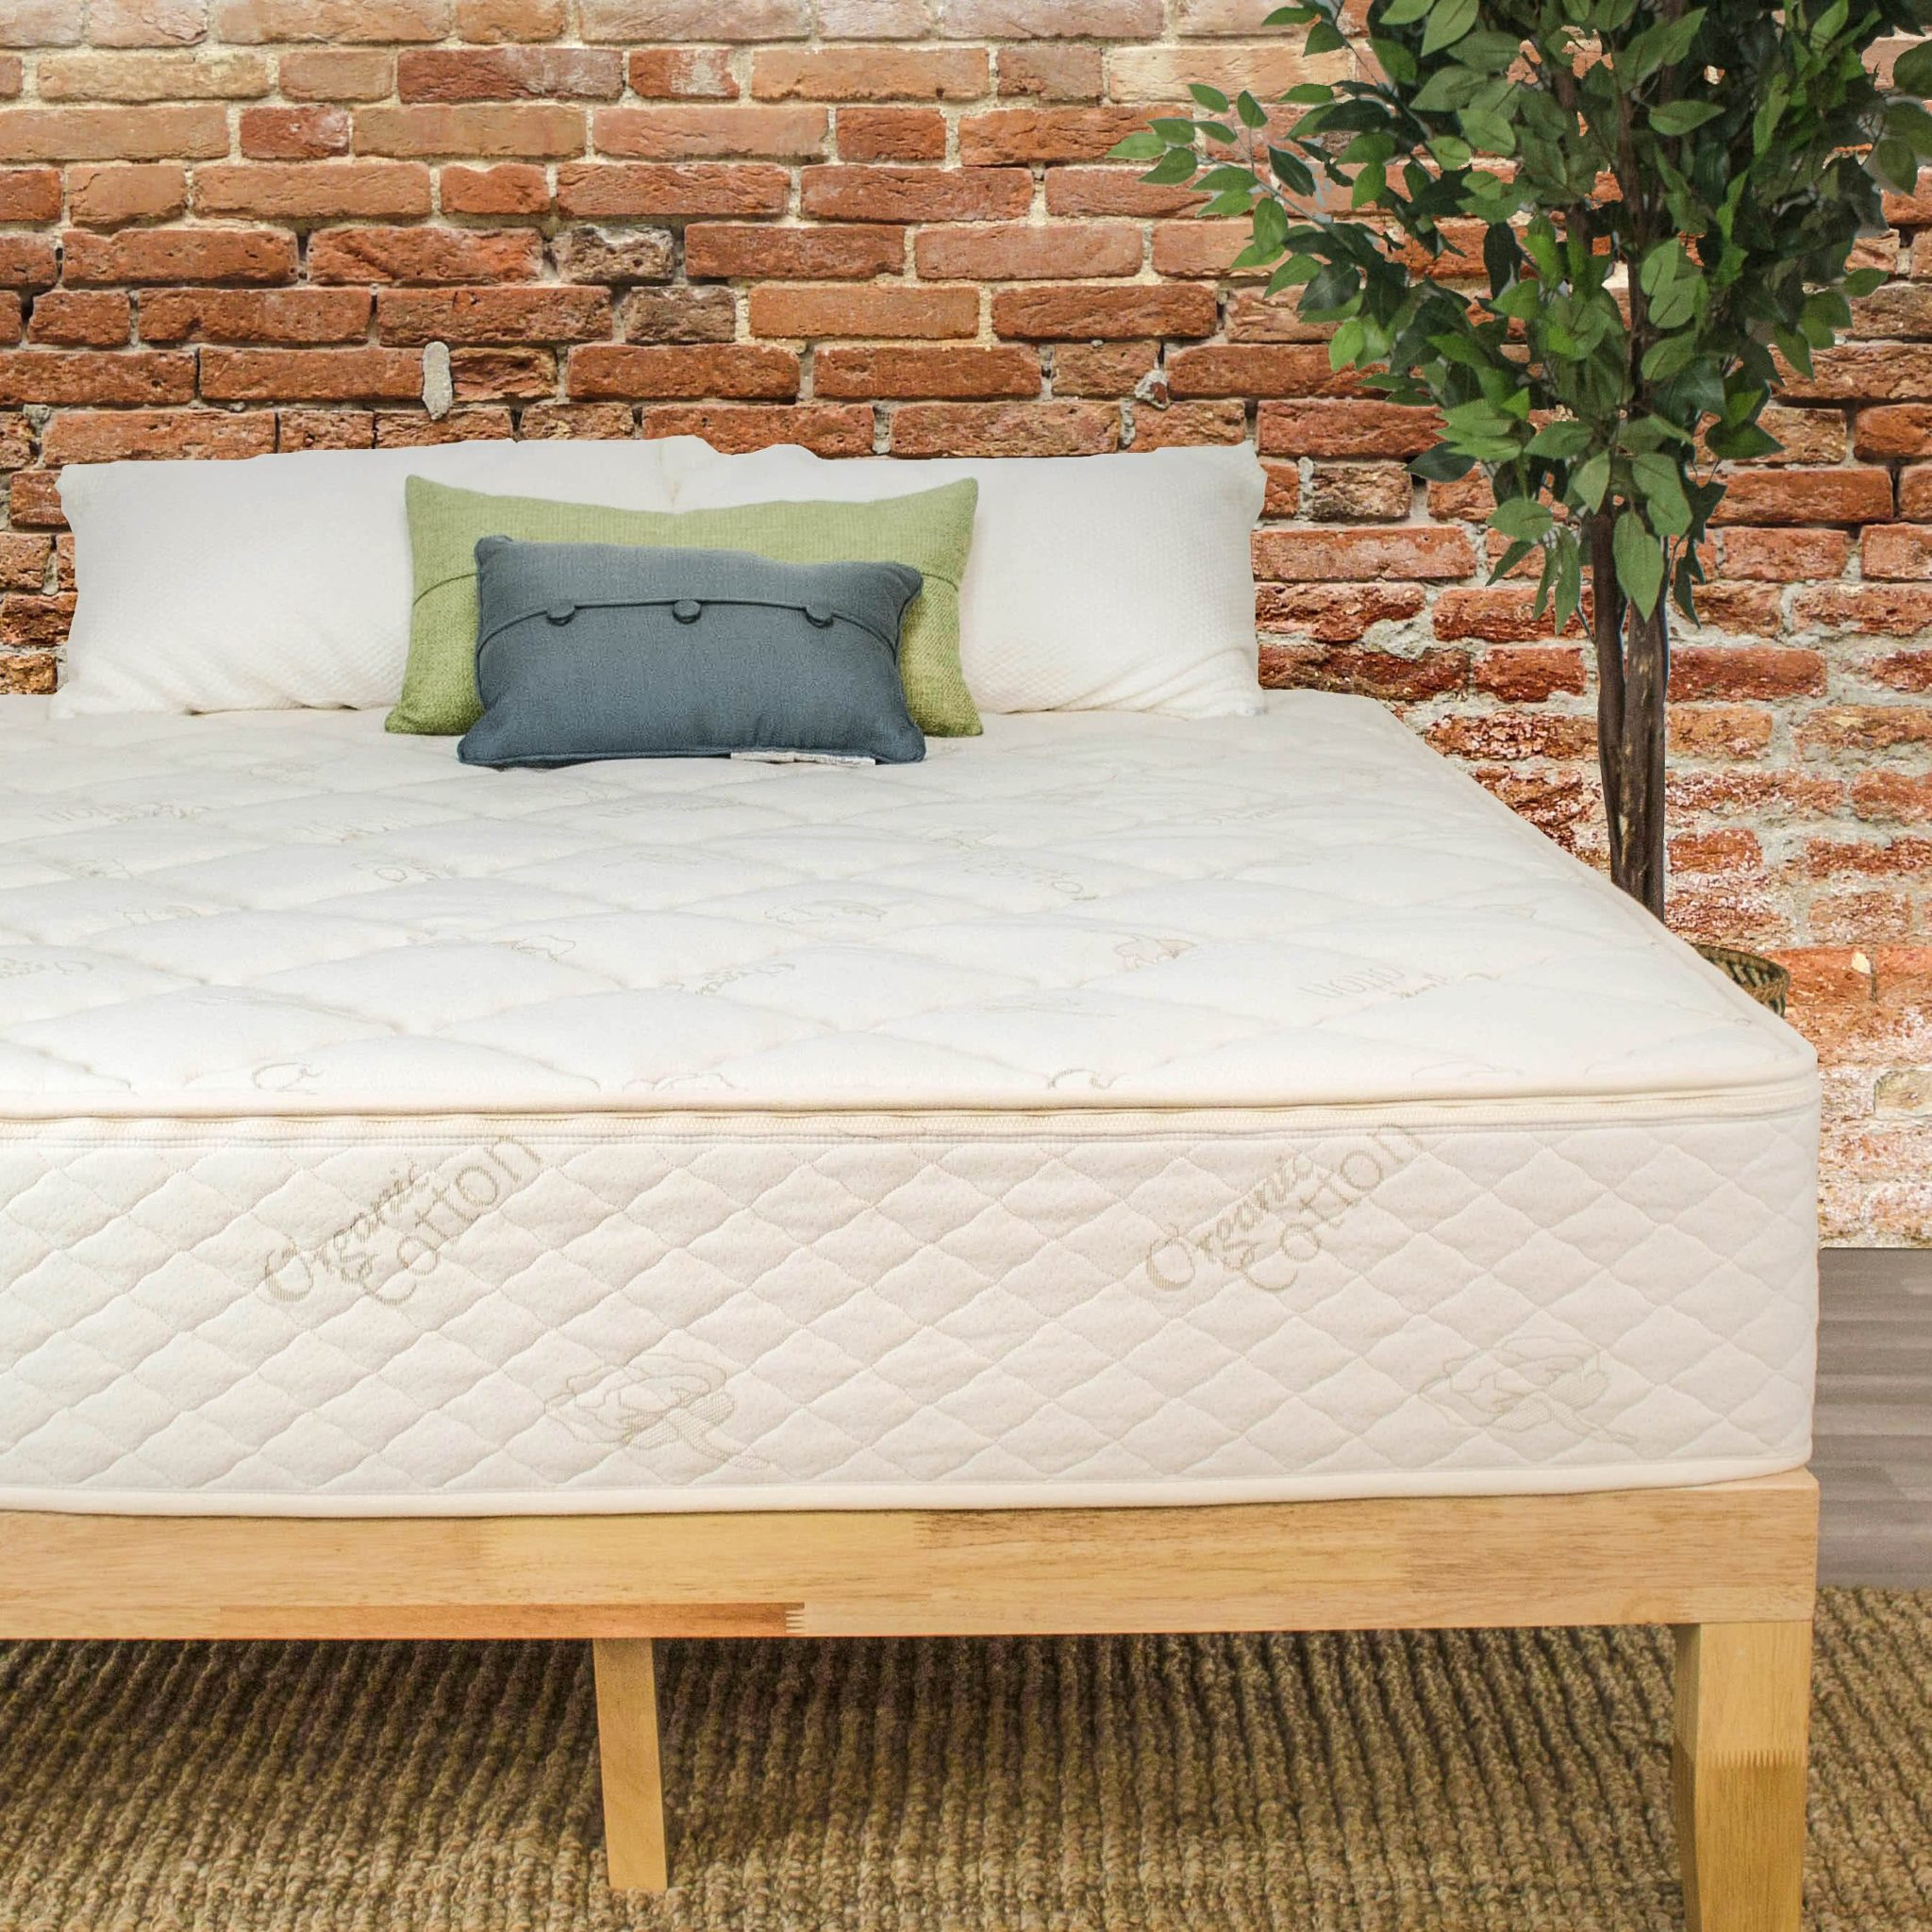 The Natural Latex Mattress by Sleep EZ set up on a wooden bed frame in a room that has a brick wall